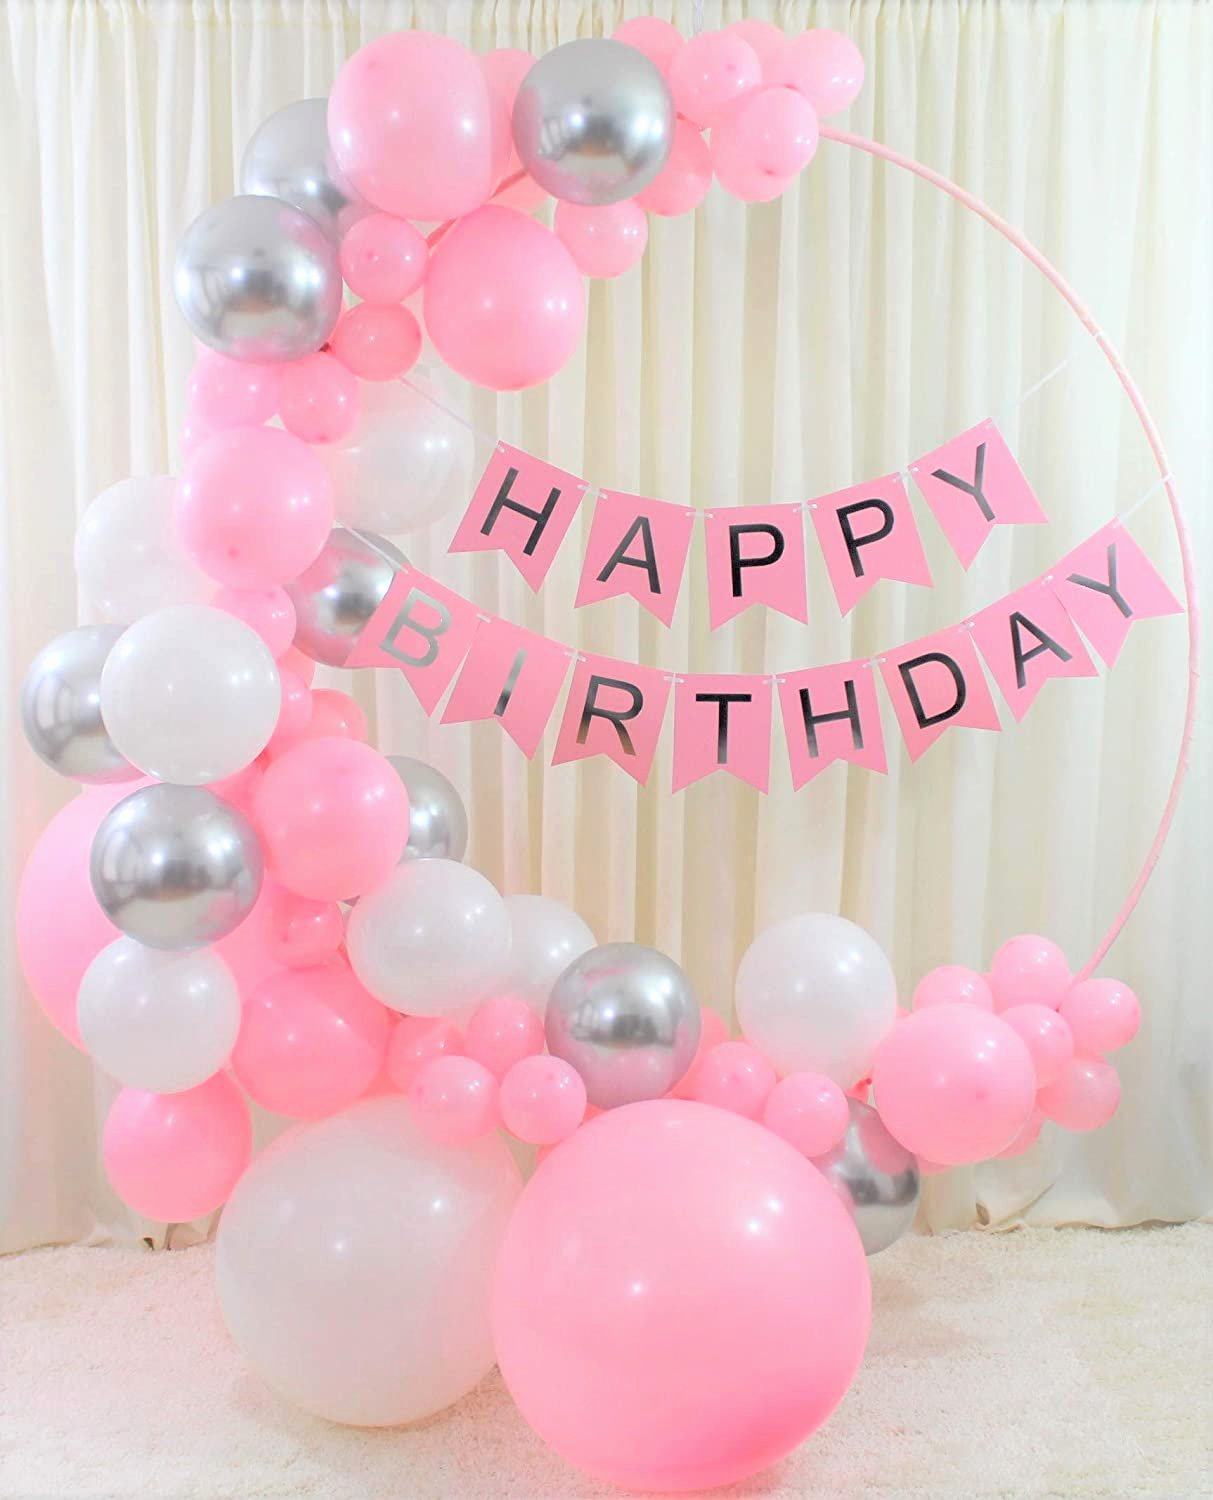 Birthday Decoration Ideas Balloon Awesome Qutechat Happy Birthday Decorations for Women and Girls 88 Pink White and Silver Balloons Lovely Banner with White Ribbon Diy tool Kit for